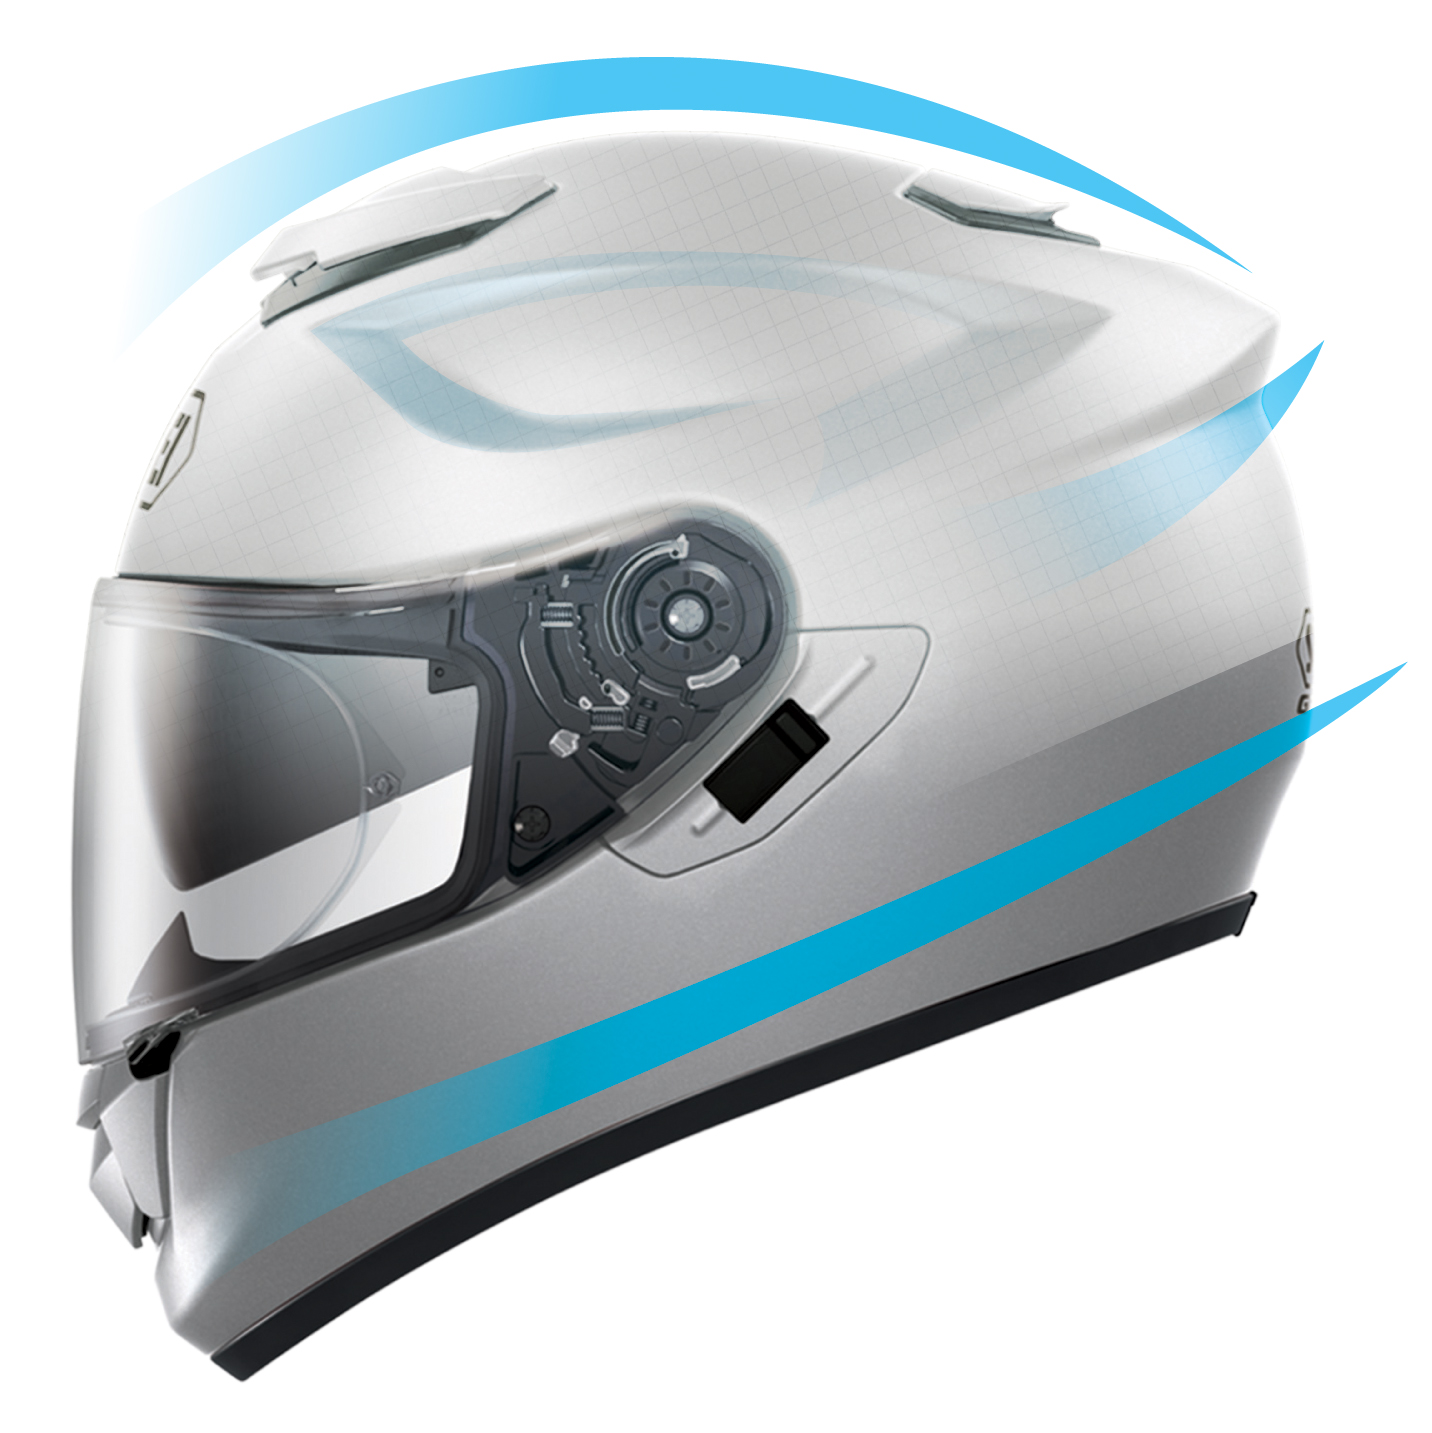 Shoei Helmet Aerodynamics